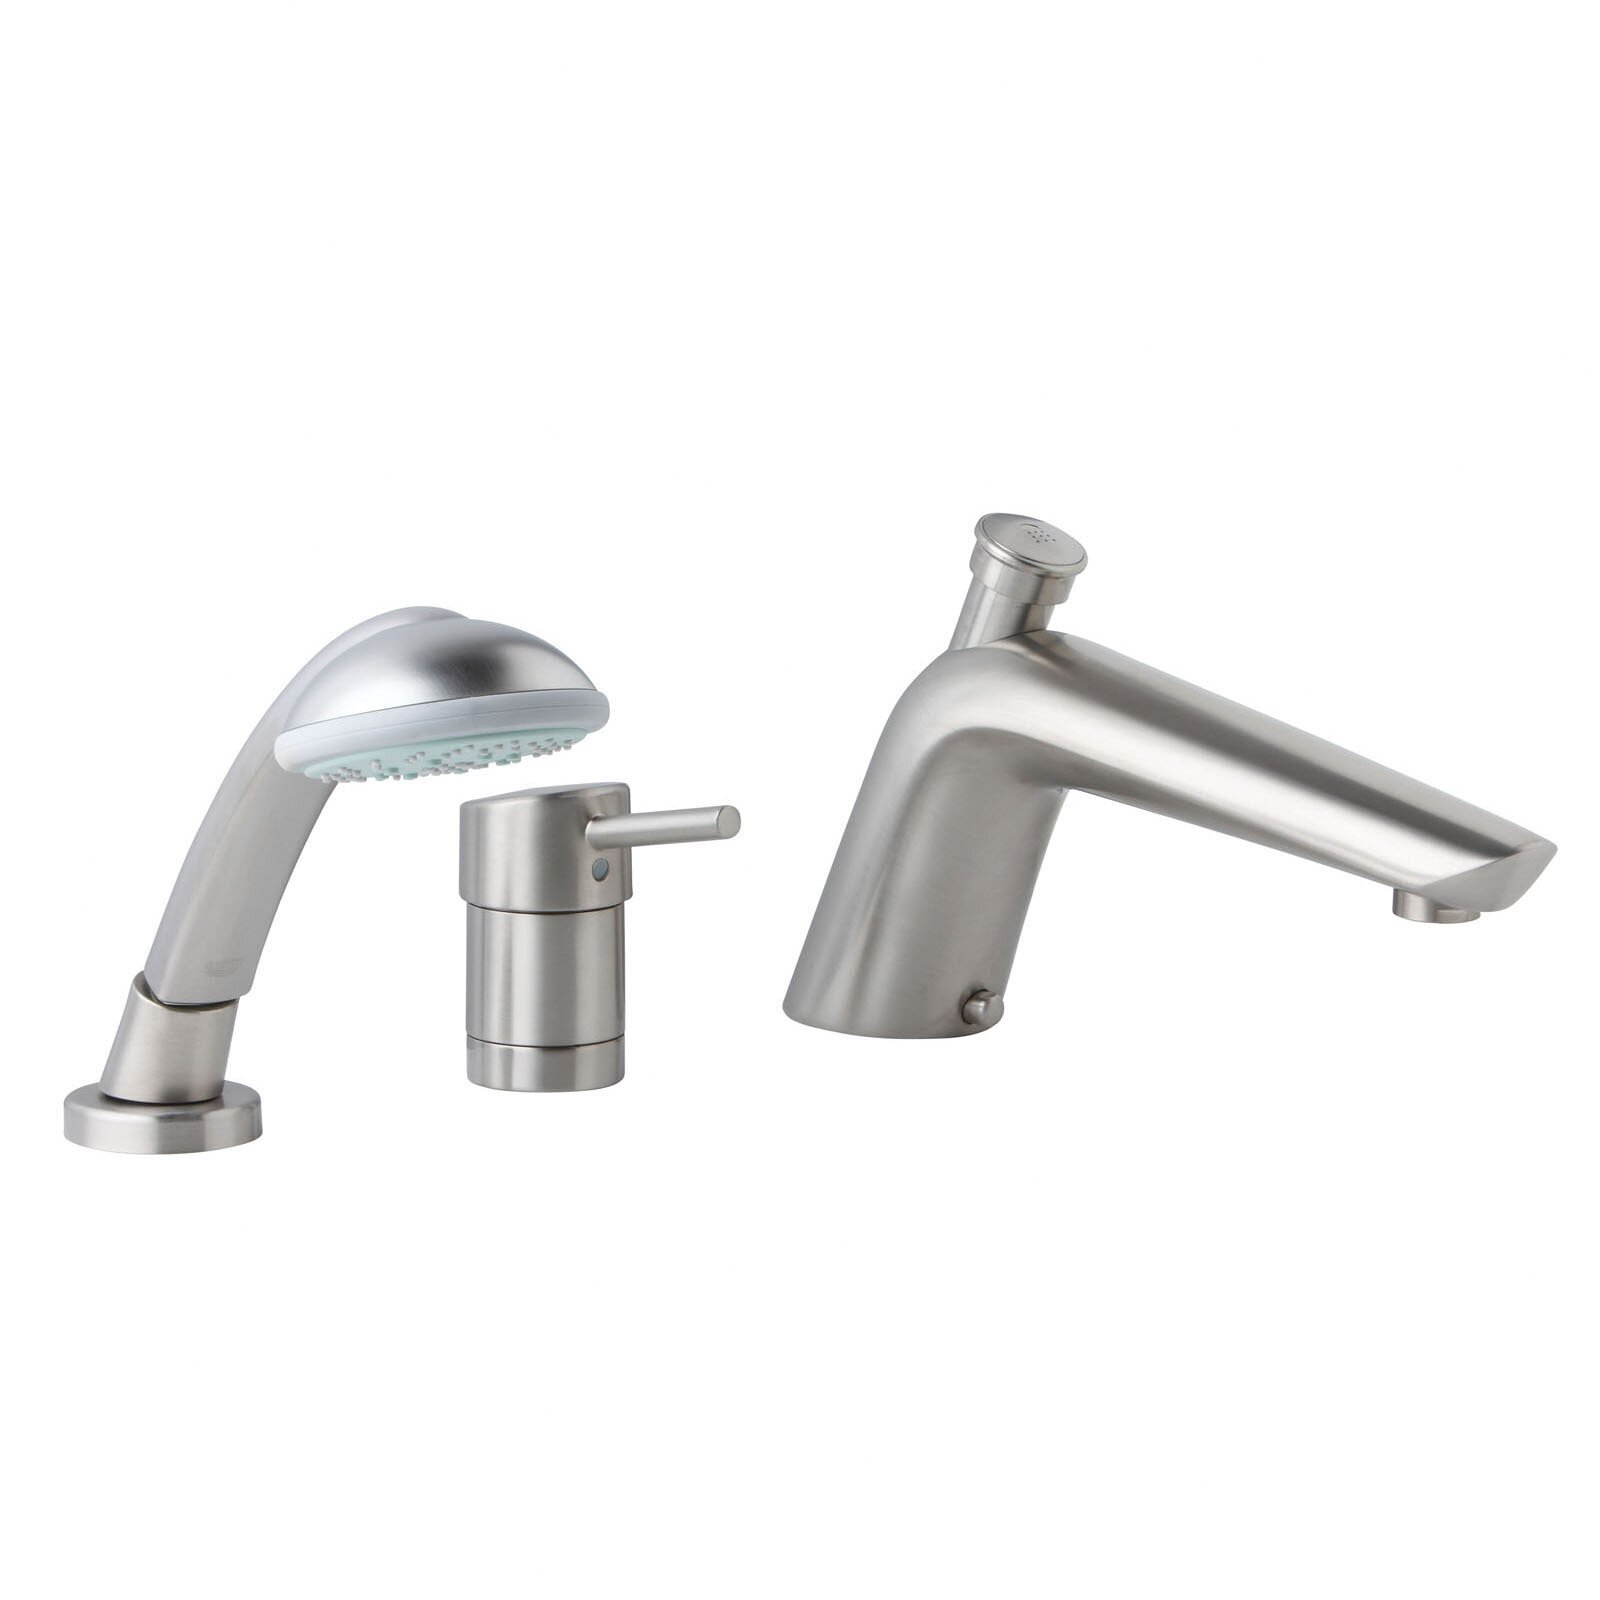 Essence Single Handle Wall Mount Roman Tub Faucet Trim